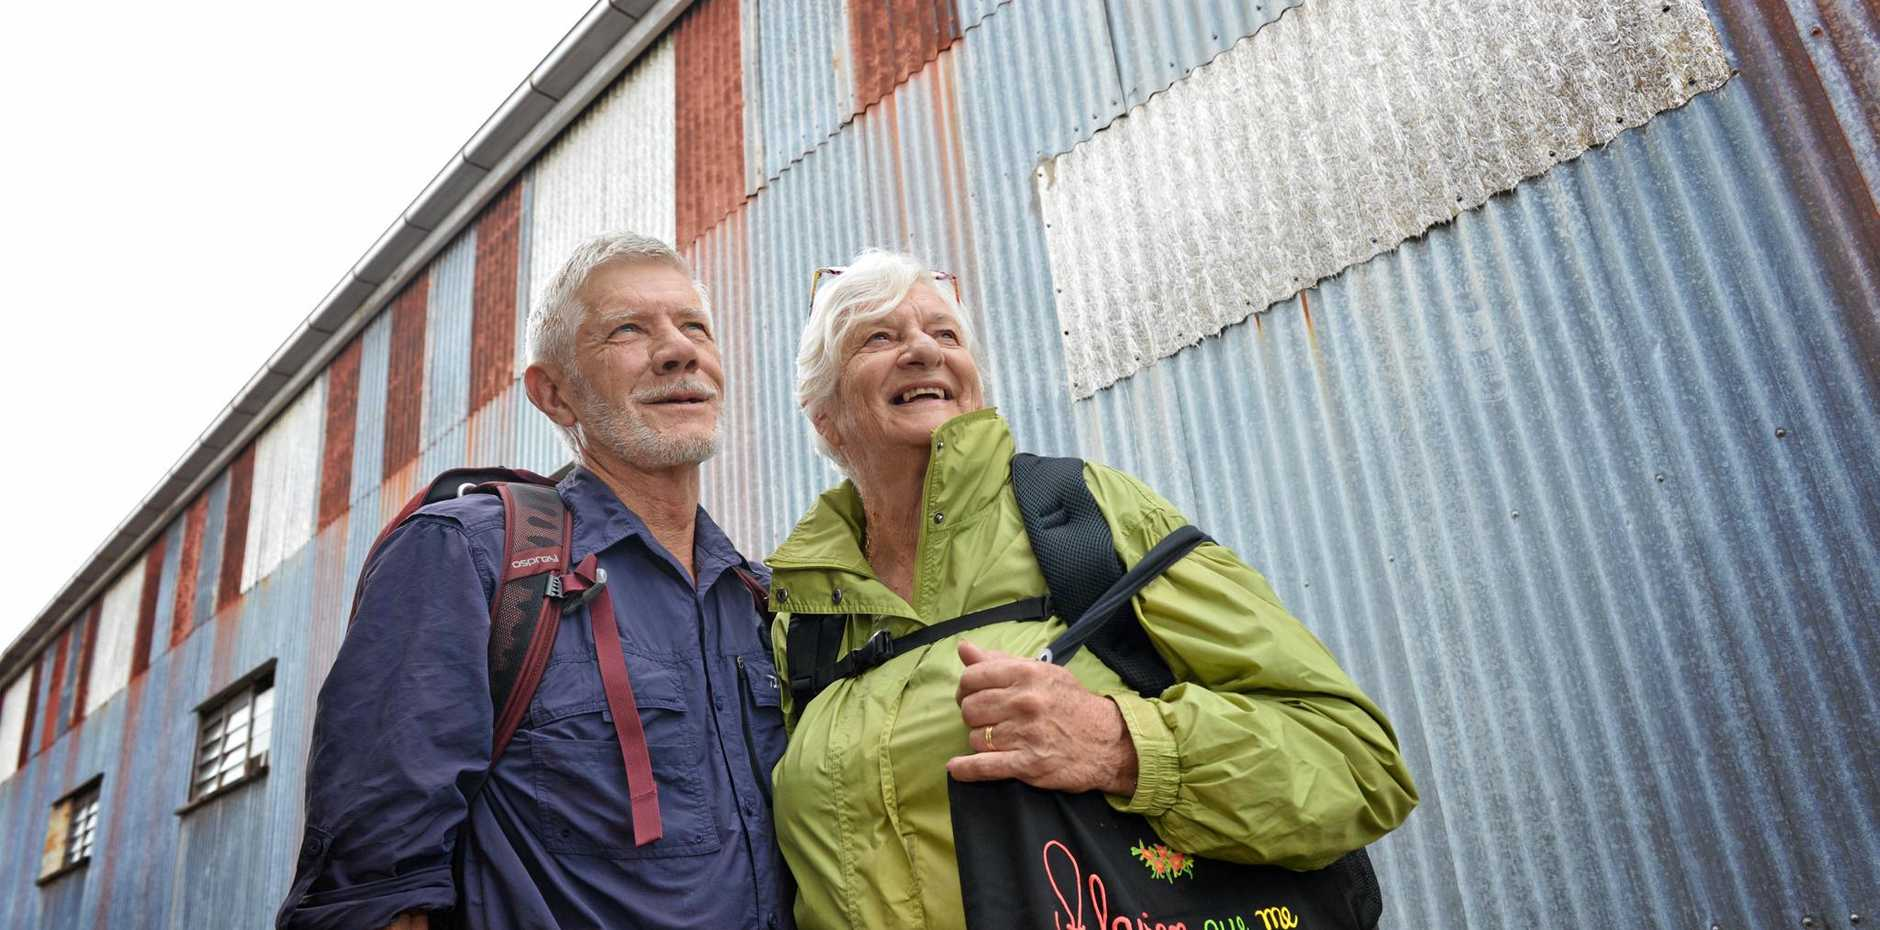 TRAVELLERS: Robin and Barbara Yule spent five weeks travelling around South America and Antarctica.